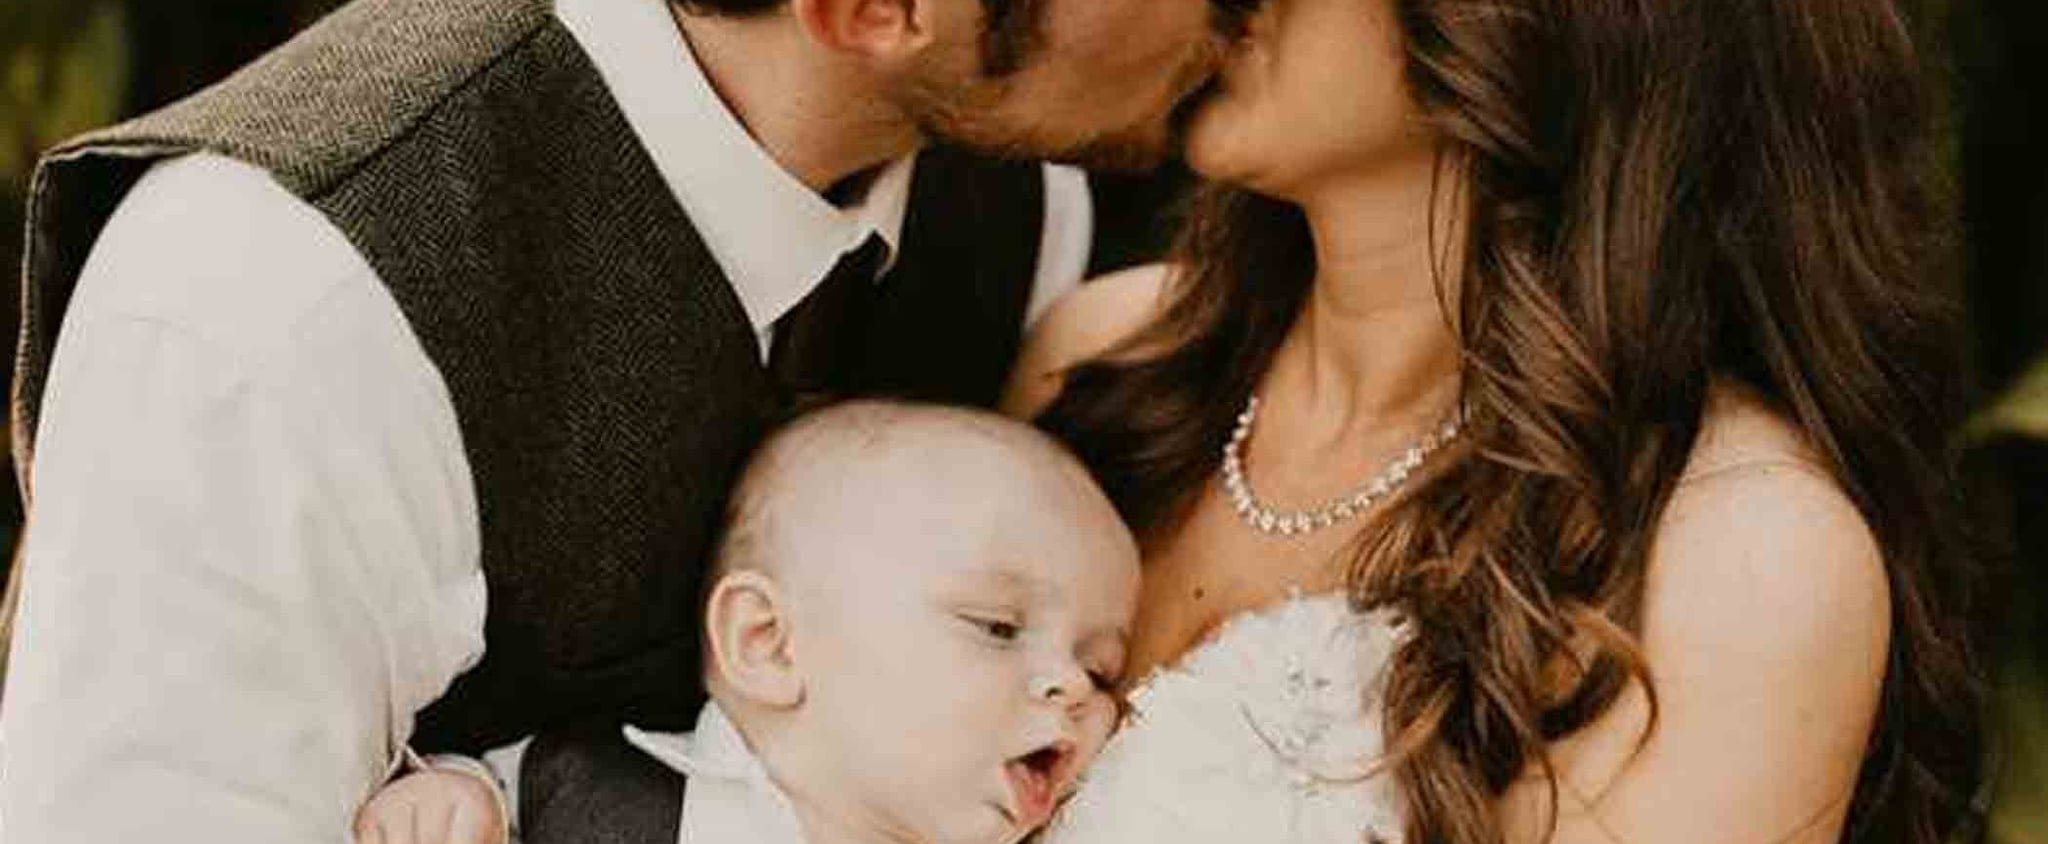 Baby Trying to Breastfeed in Mom's Wedding Photo